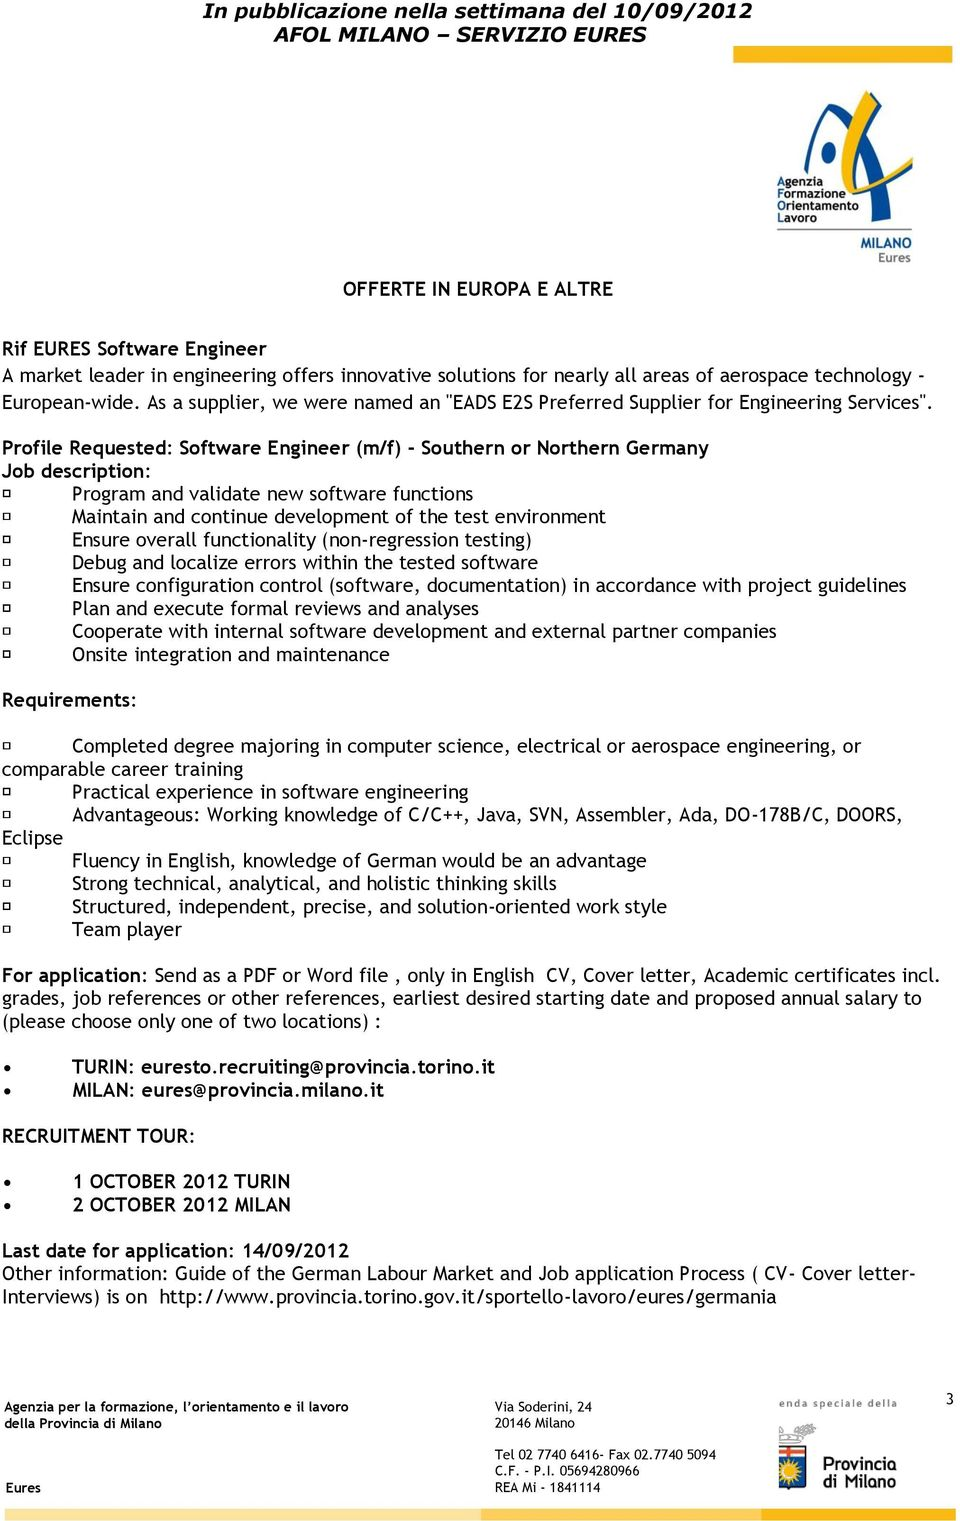 Profile Requested: Software Engineer (m/f) - Southern or Northern Germany Job description: Program and validate new software functions Maintain and continue development of the test environment Ensure